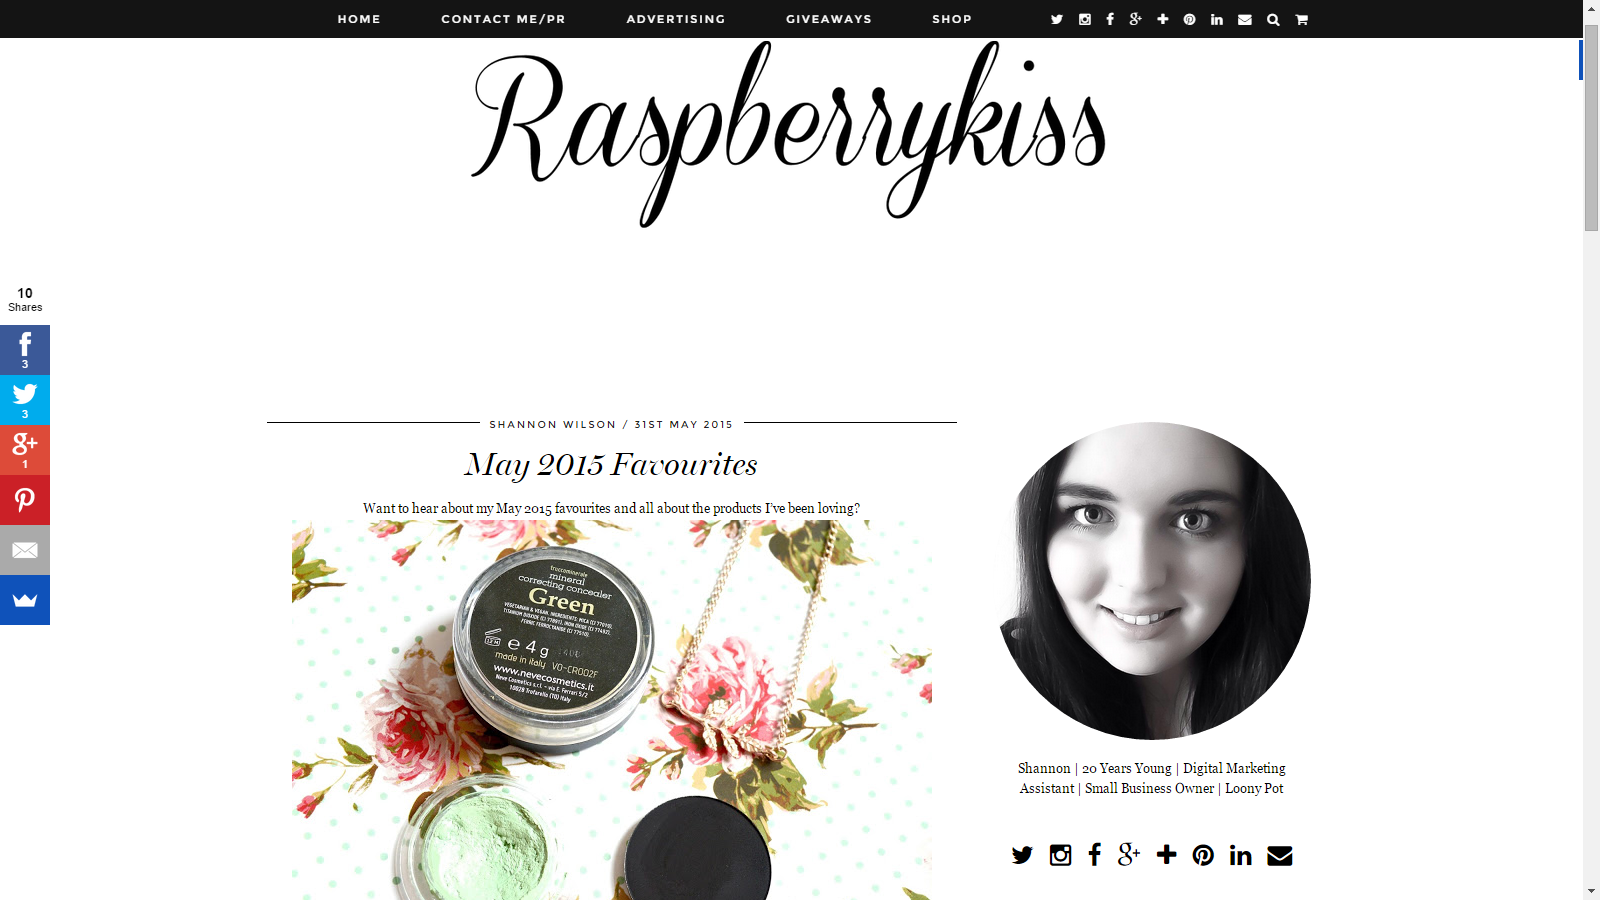 Raspberrykiss Features Veil Cover Cream in Her May Favourites Post